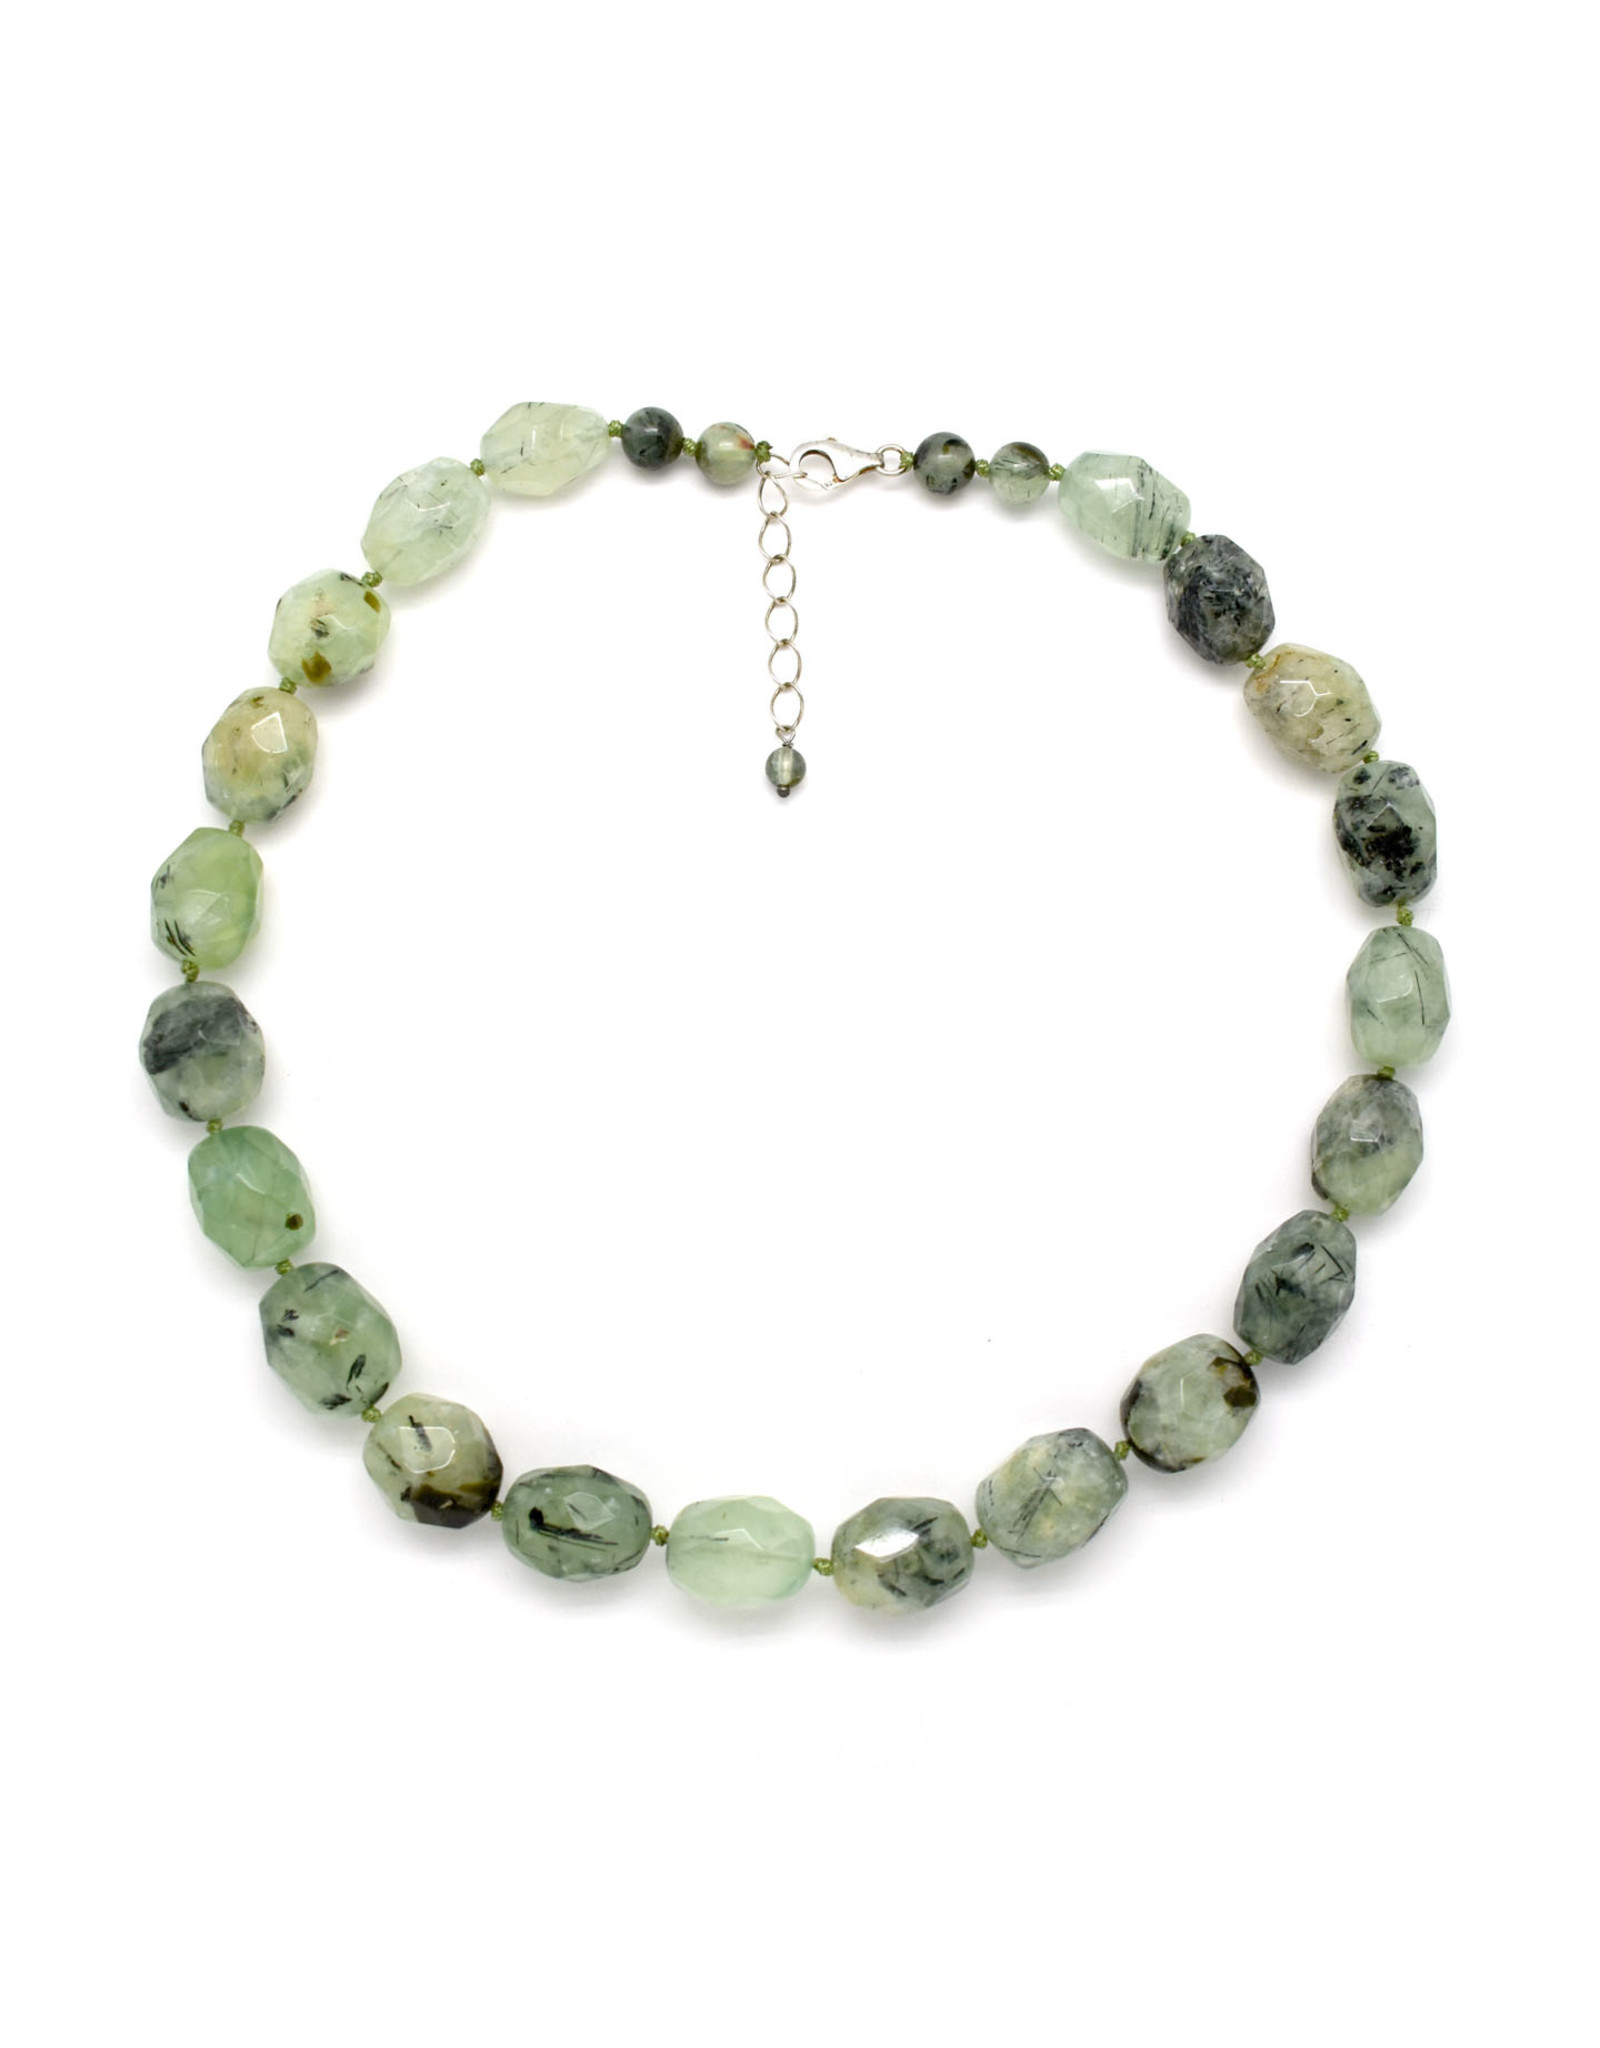 Faceted Fluorite Beaded Necklace